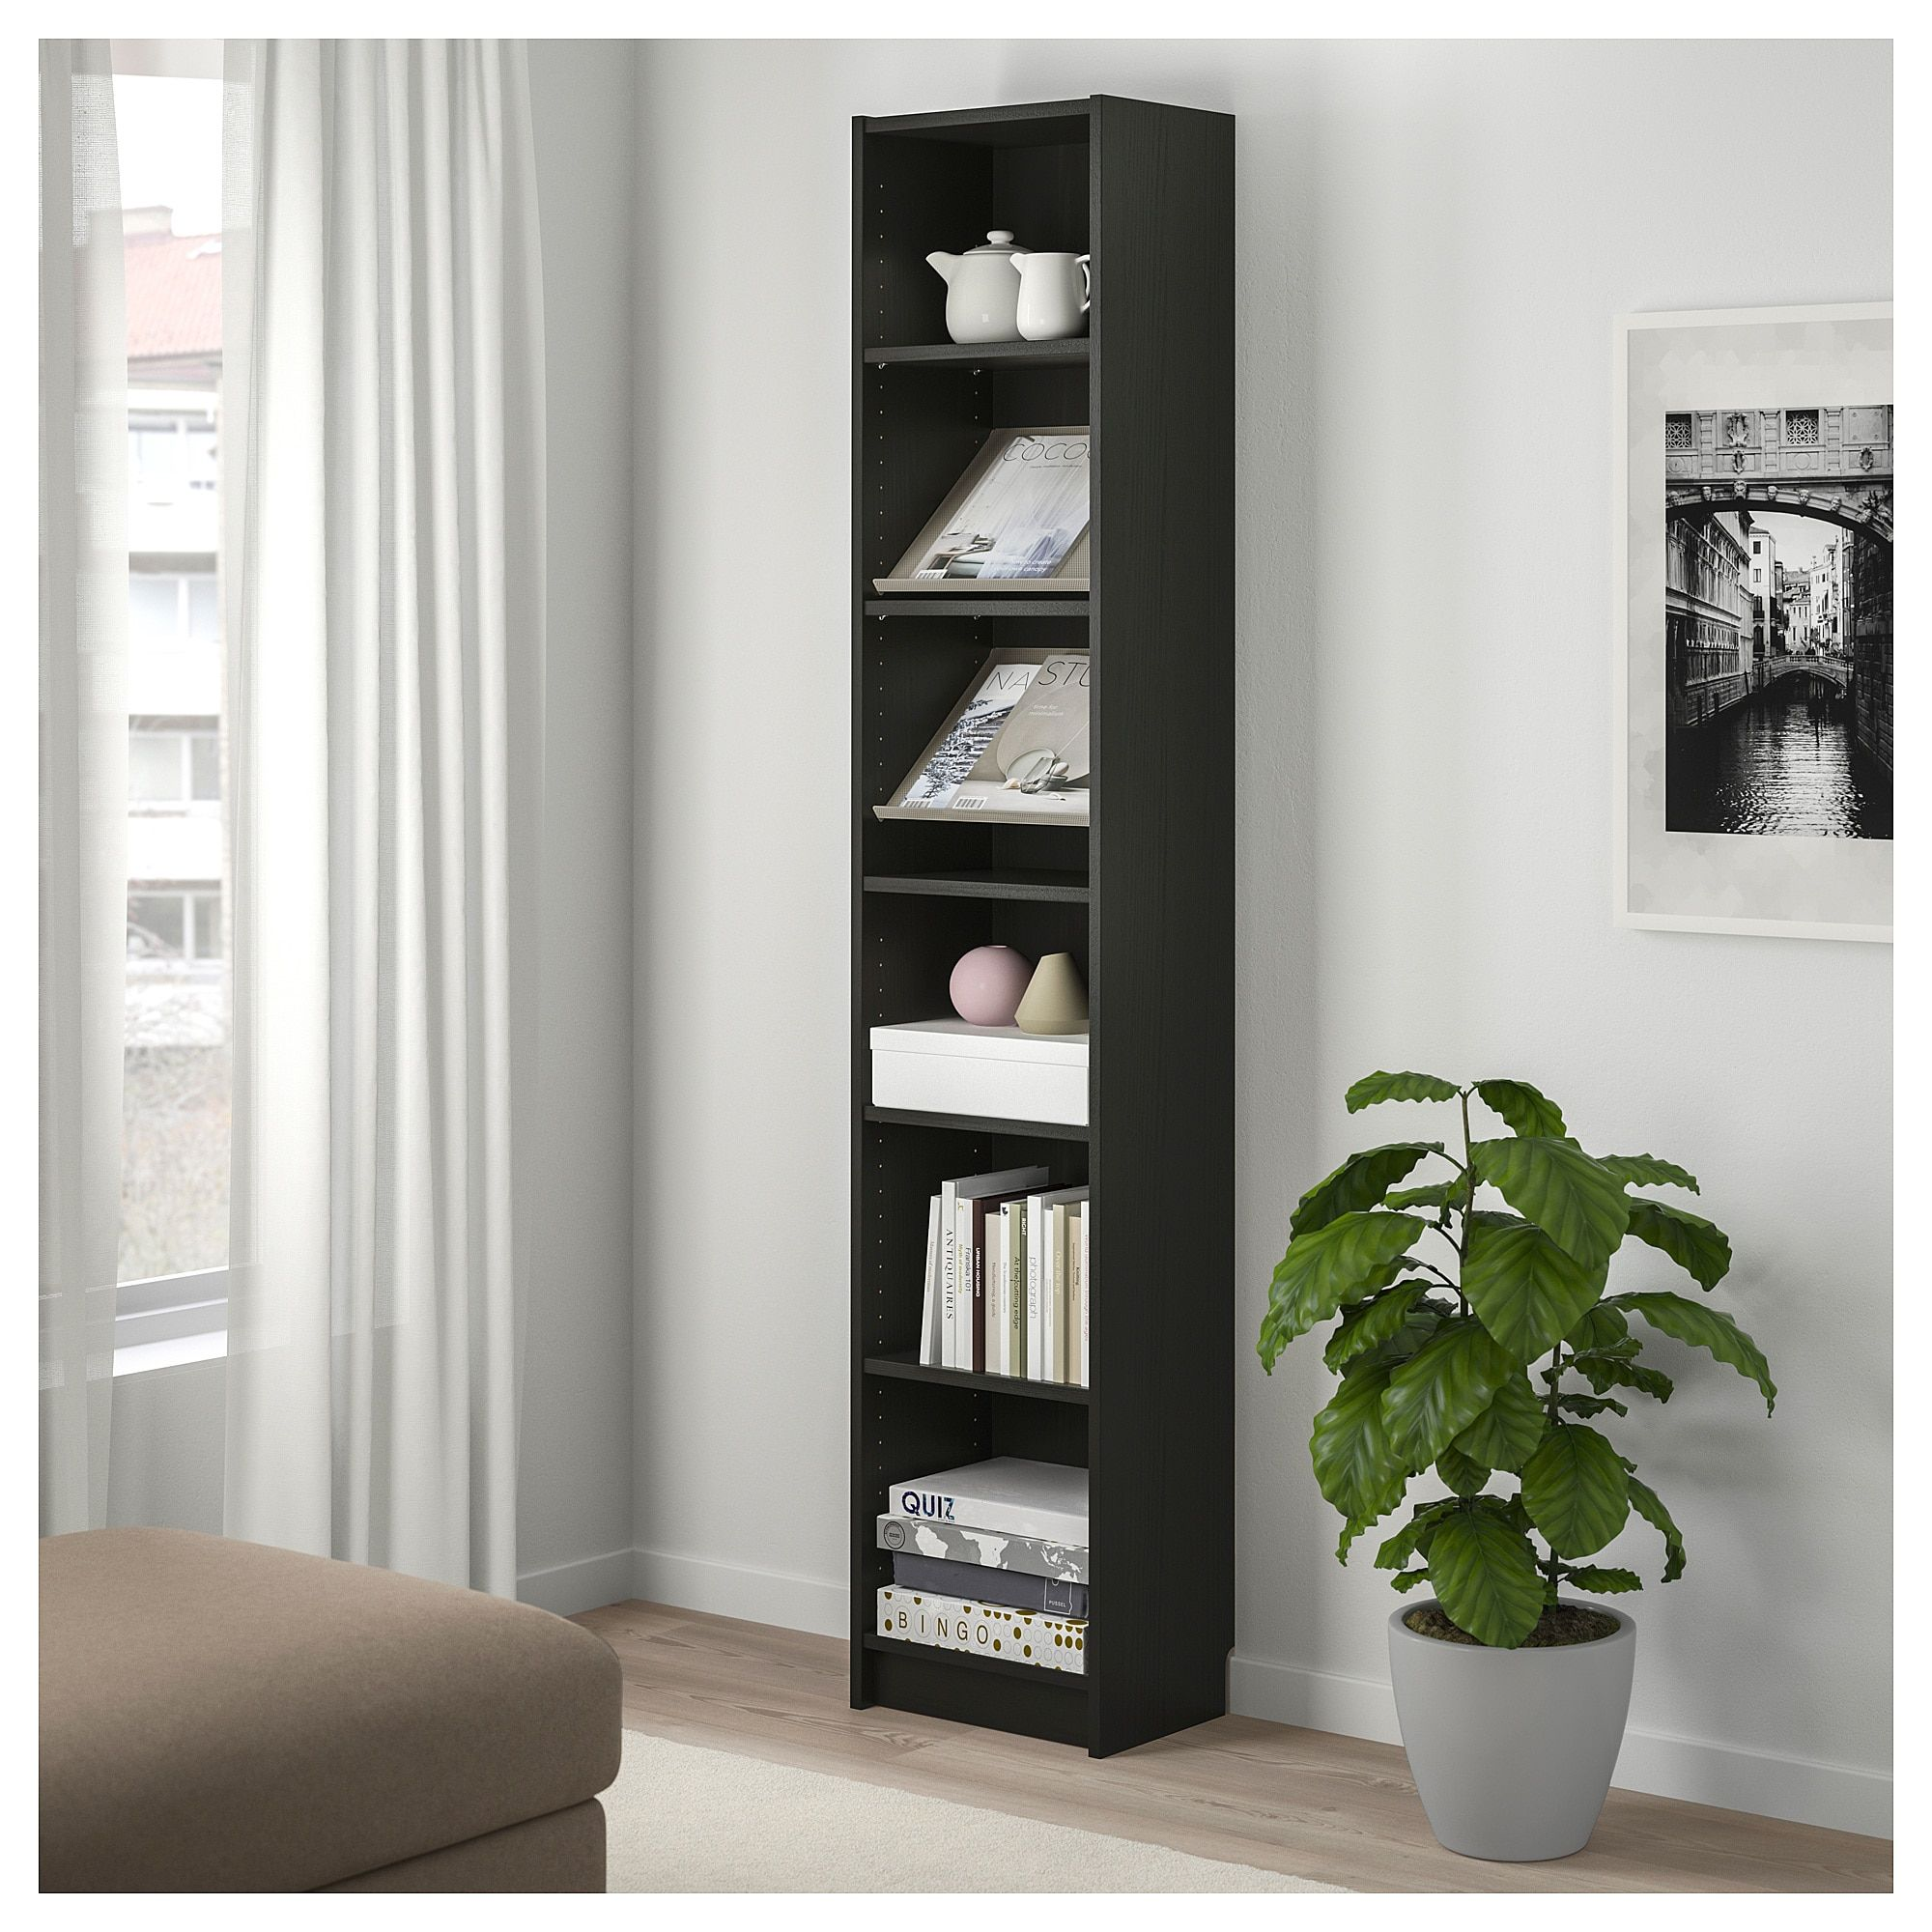 Ikea Wardrobe Leaning To One Side Ikea Billy Bottna Black Brown Beige Bookcase With Display